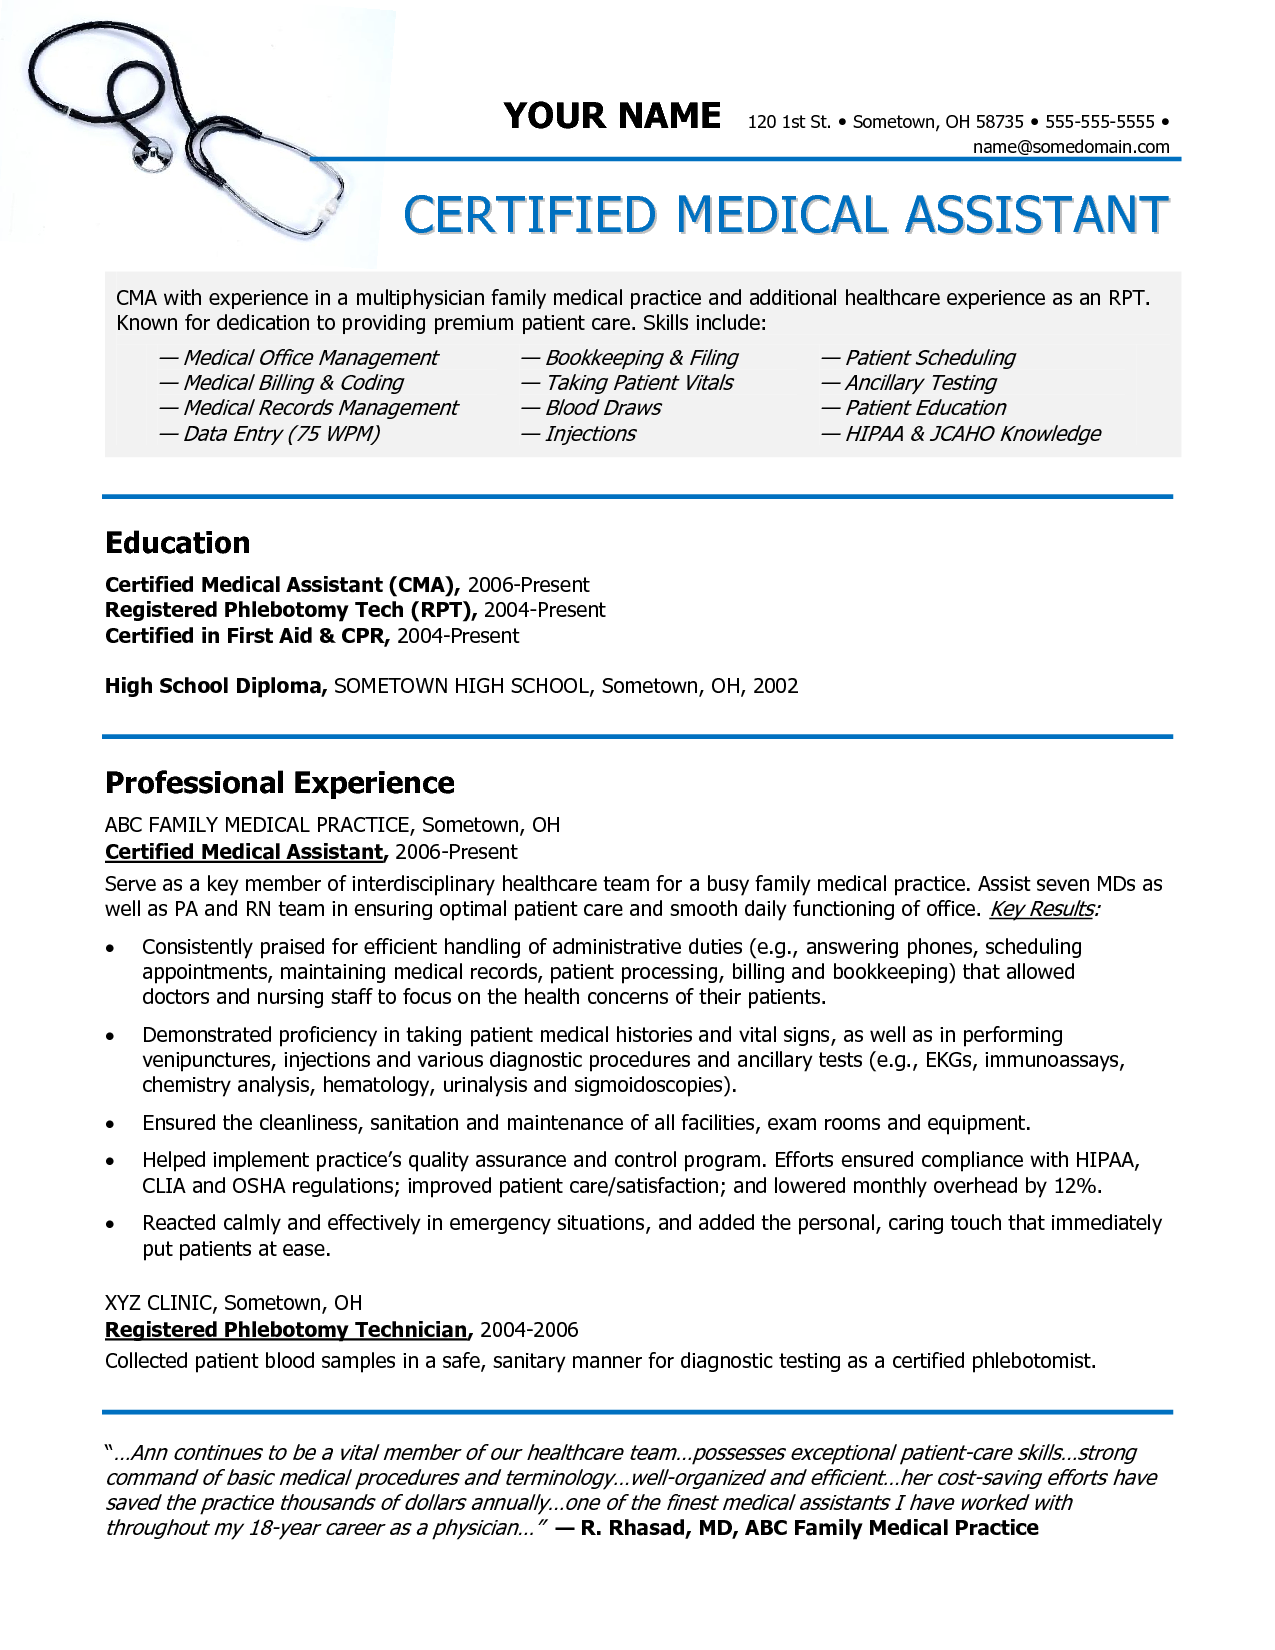 Objective For Resume Medical Assistant Medical Assistant Resume Sample,  Medical Resume Templates 14 Medical Assistant Resume Uxhandycom, Medical  Assistant ...  Free Sample Of Resume